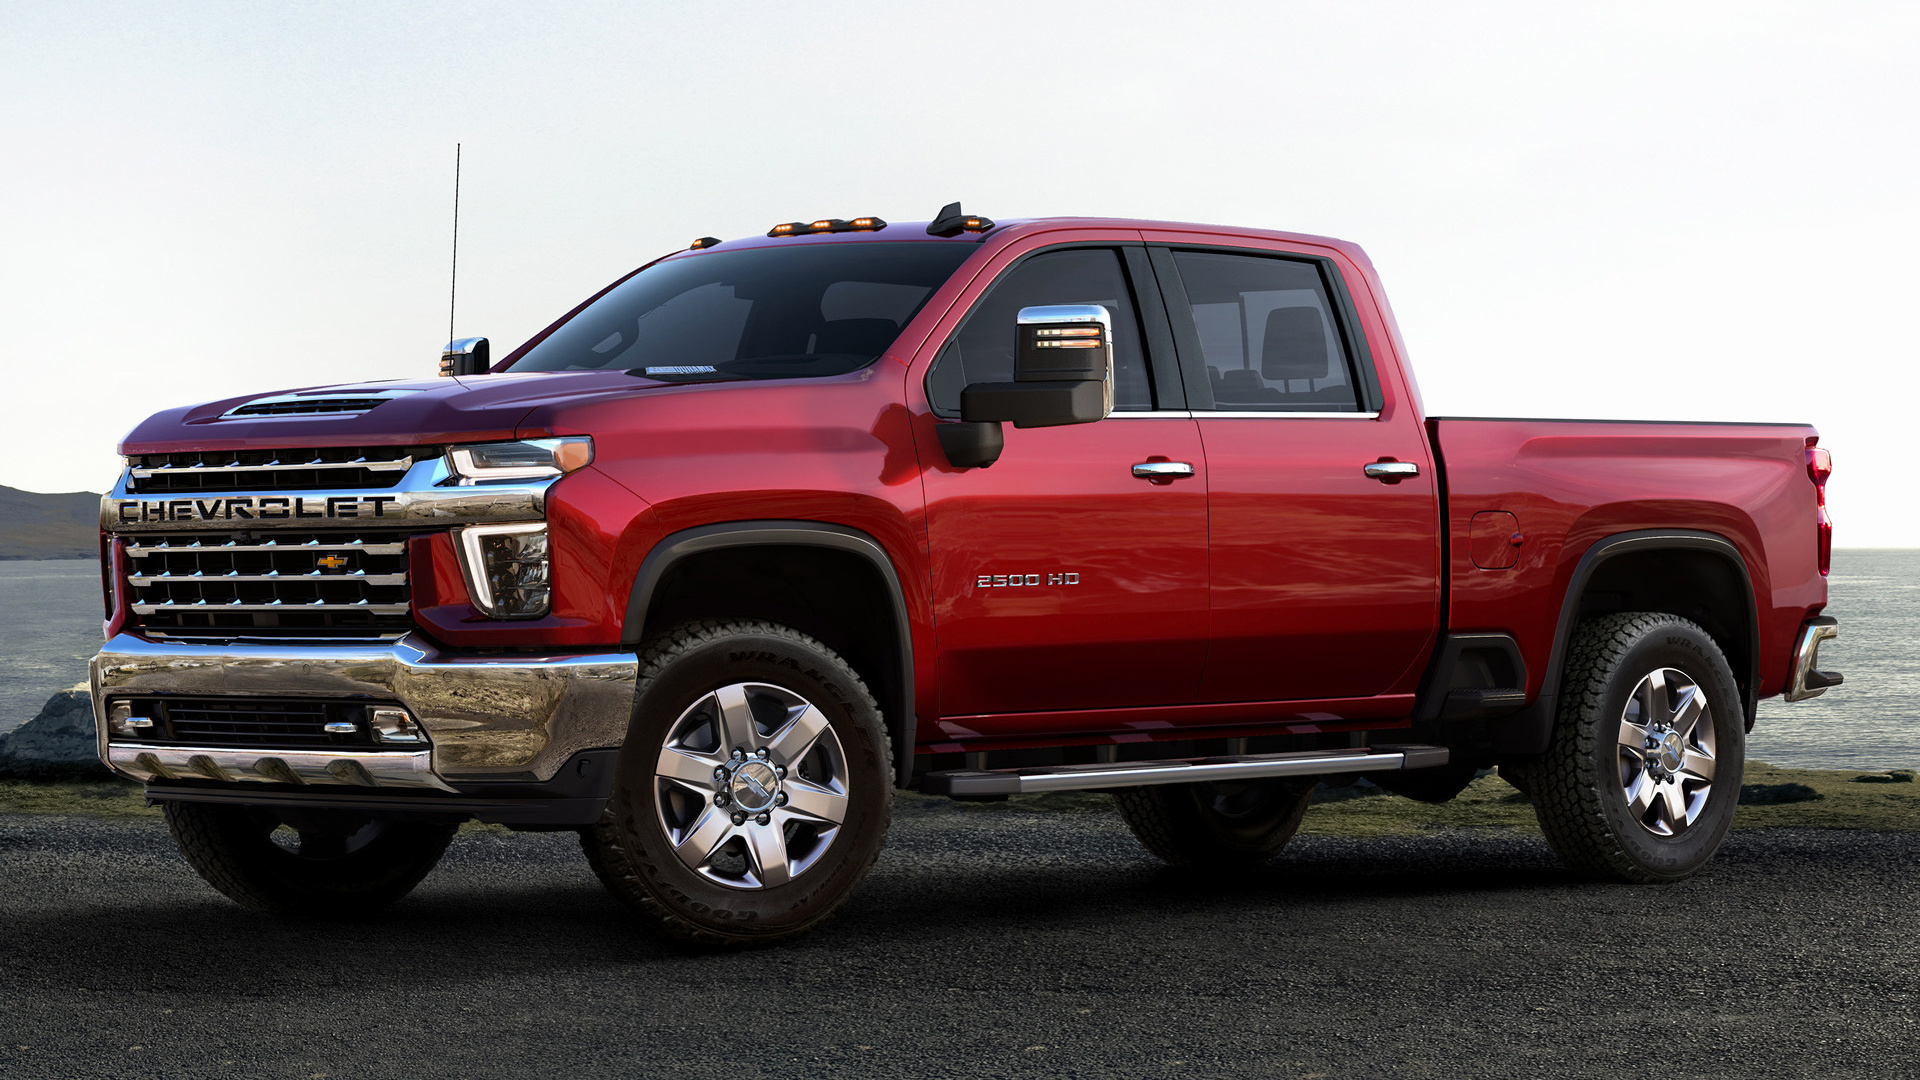 2020 Chevrolet Silverado 2500 HD LTZ Crew Cab - Wallpapers ...